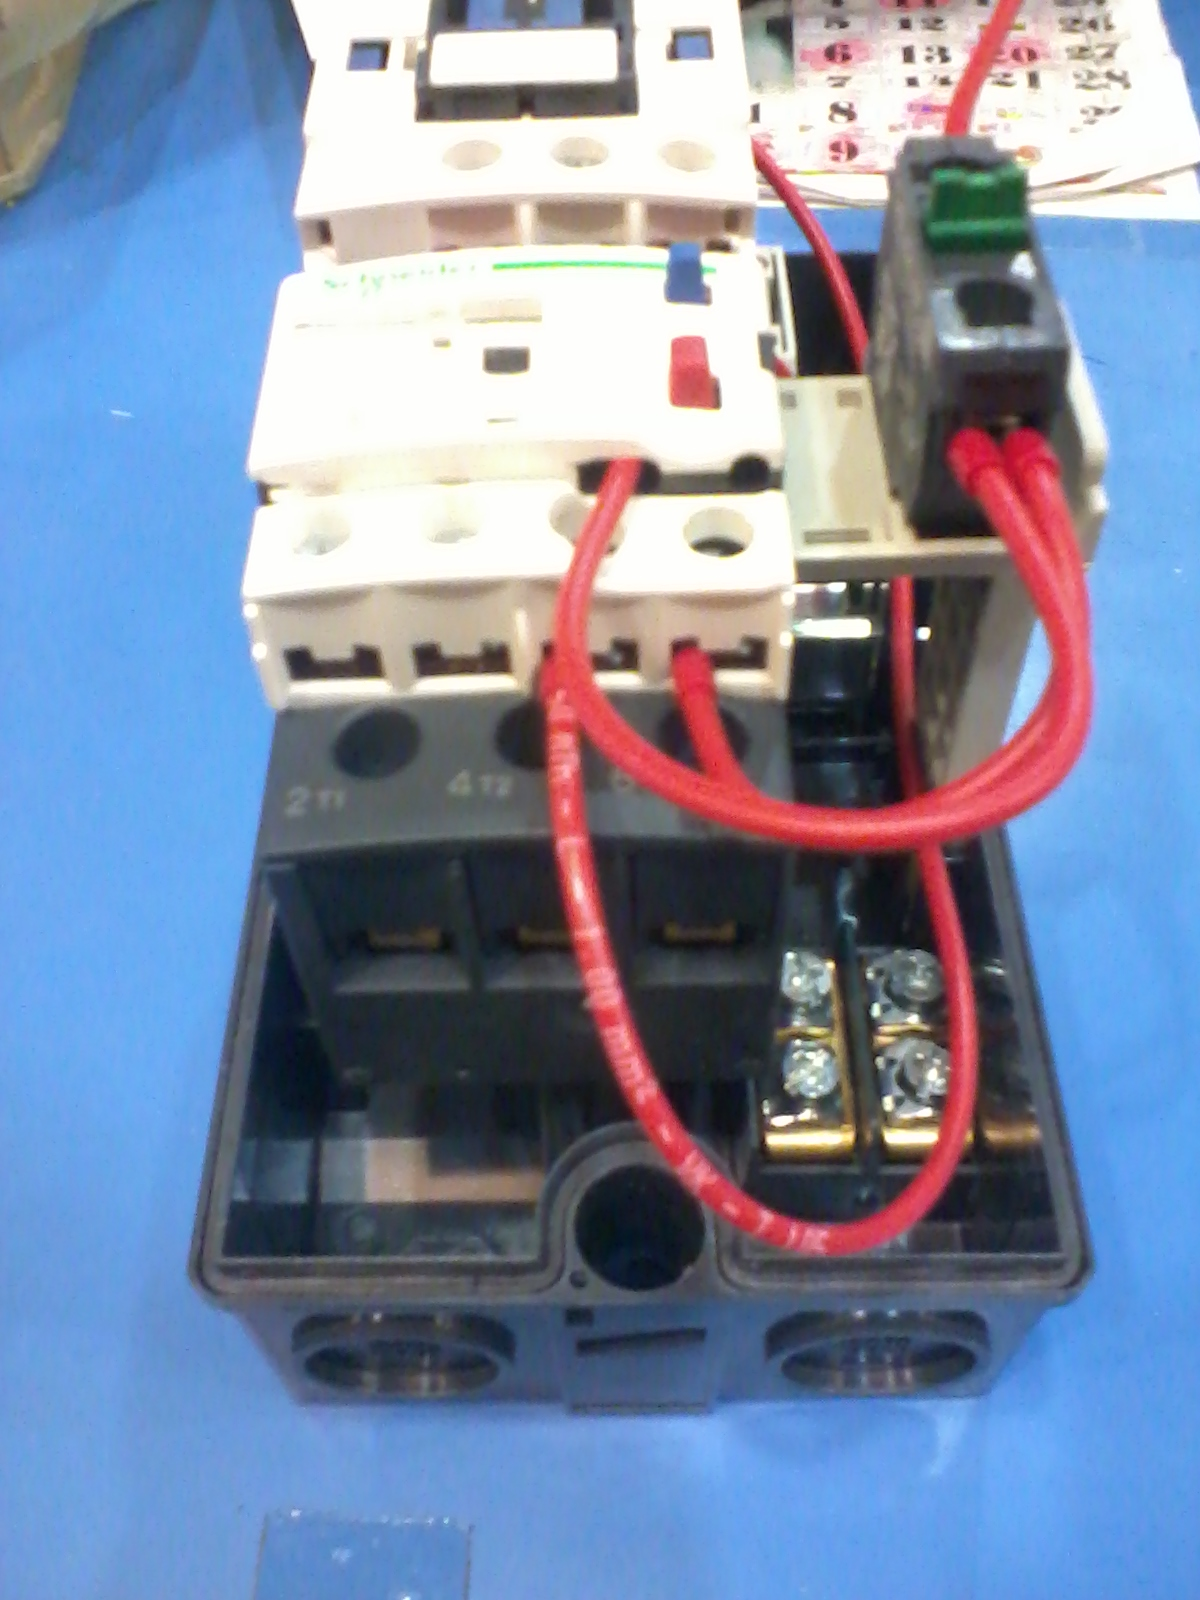 Symbols Bof Bmotor Bstarters as well Hqdefault together with Hqdefault furthermore Direct On Line Phase Dol Motor Control further The Dol Motor Starter Parts Contactor Fuse Circuit Breaker And Of Schneider Electric Contactor Wiring Diagram. on dol starter wiring diagram